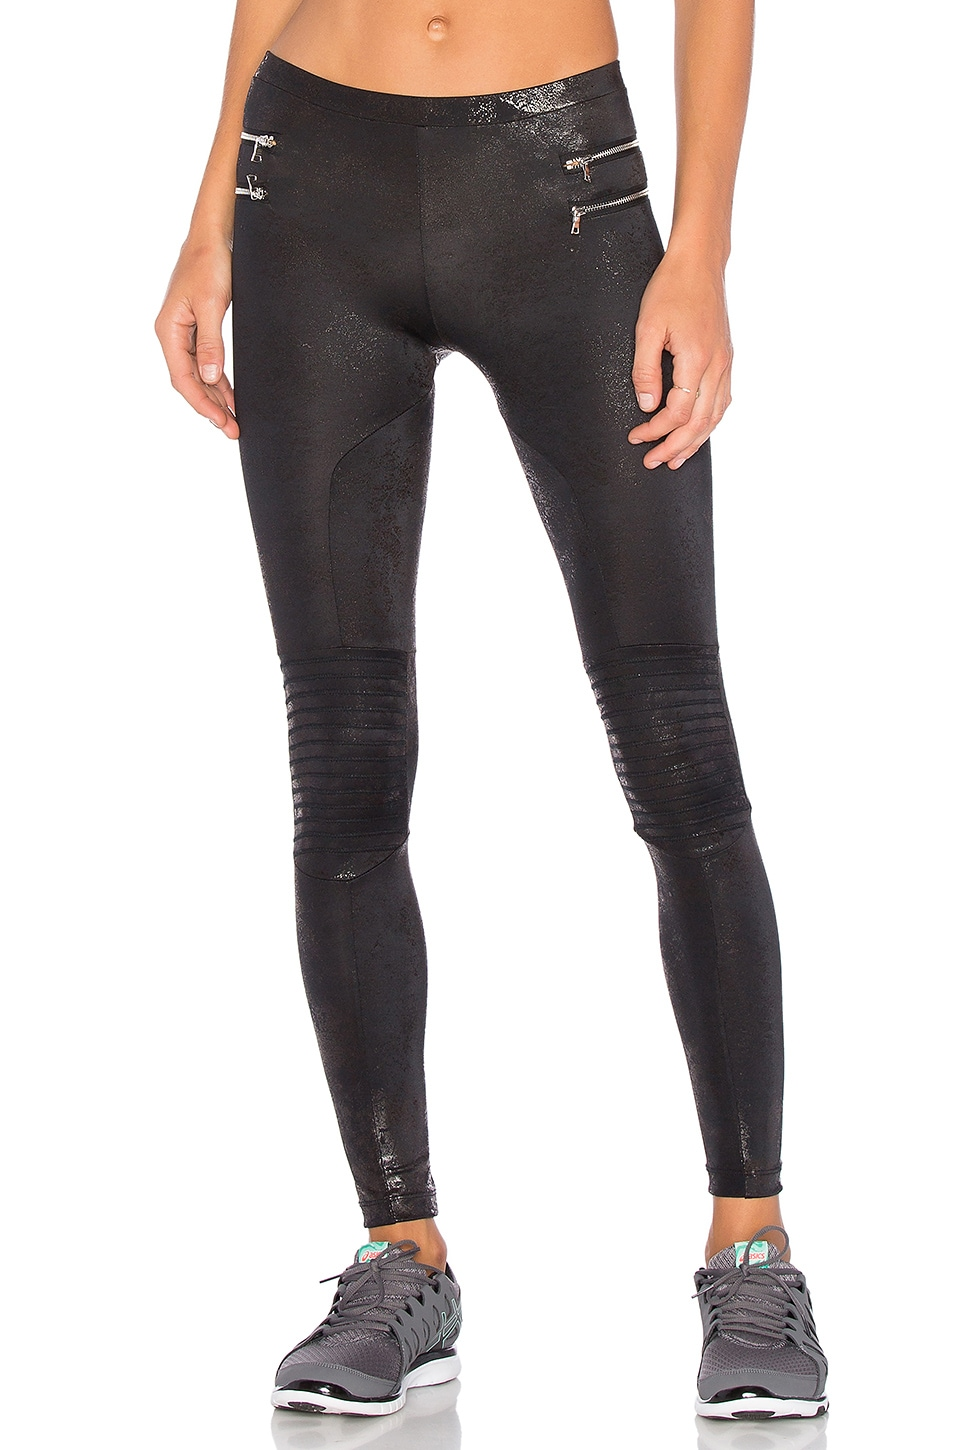 Blue Life Zipper Moto Legging in Metallic Black